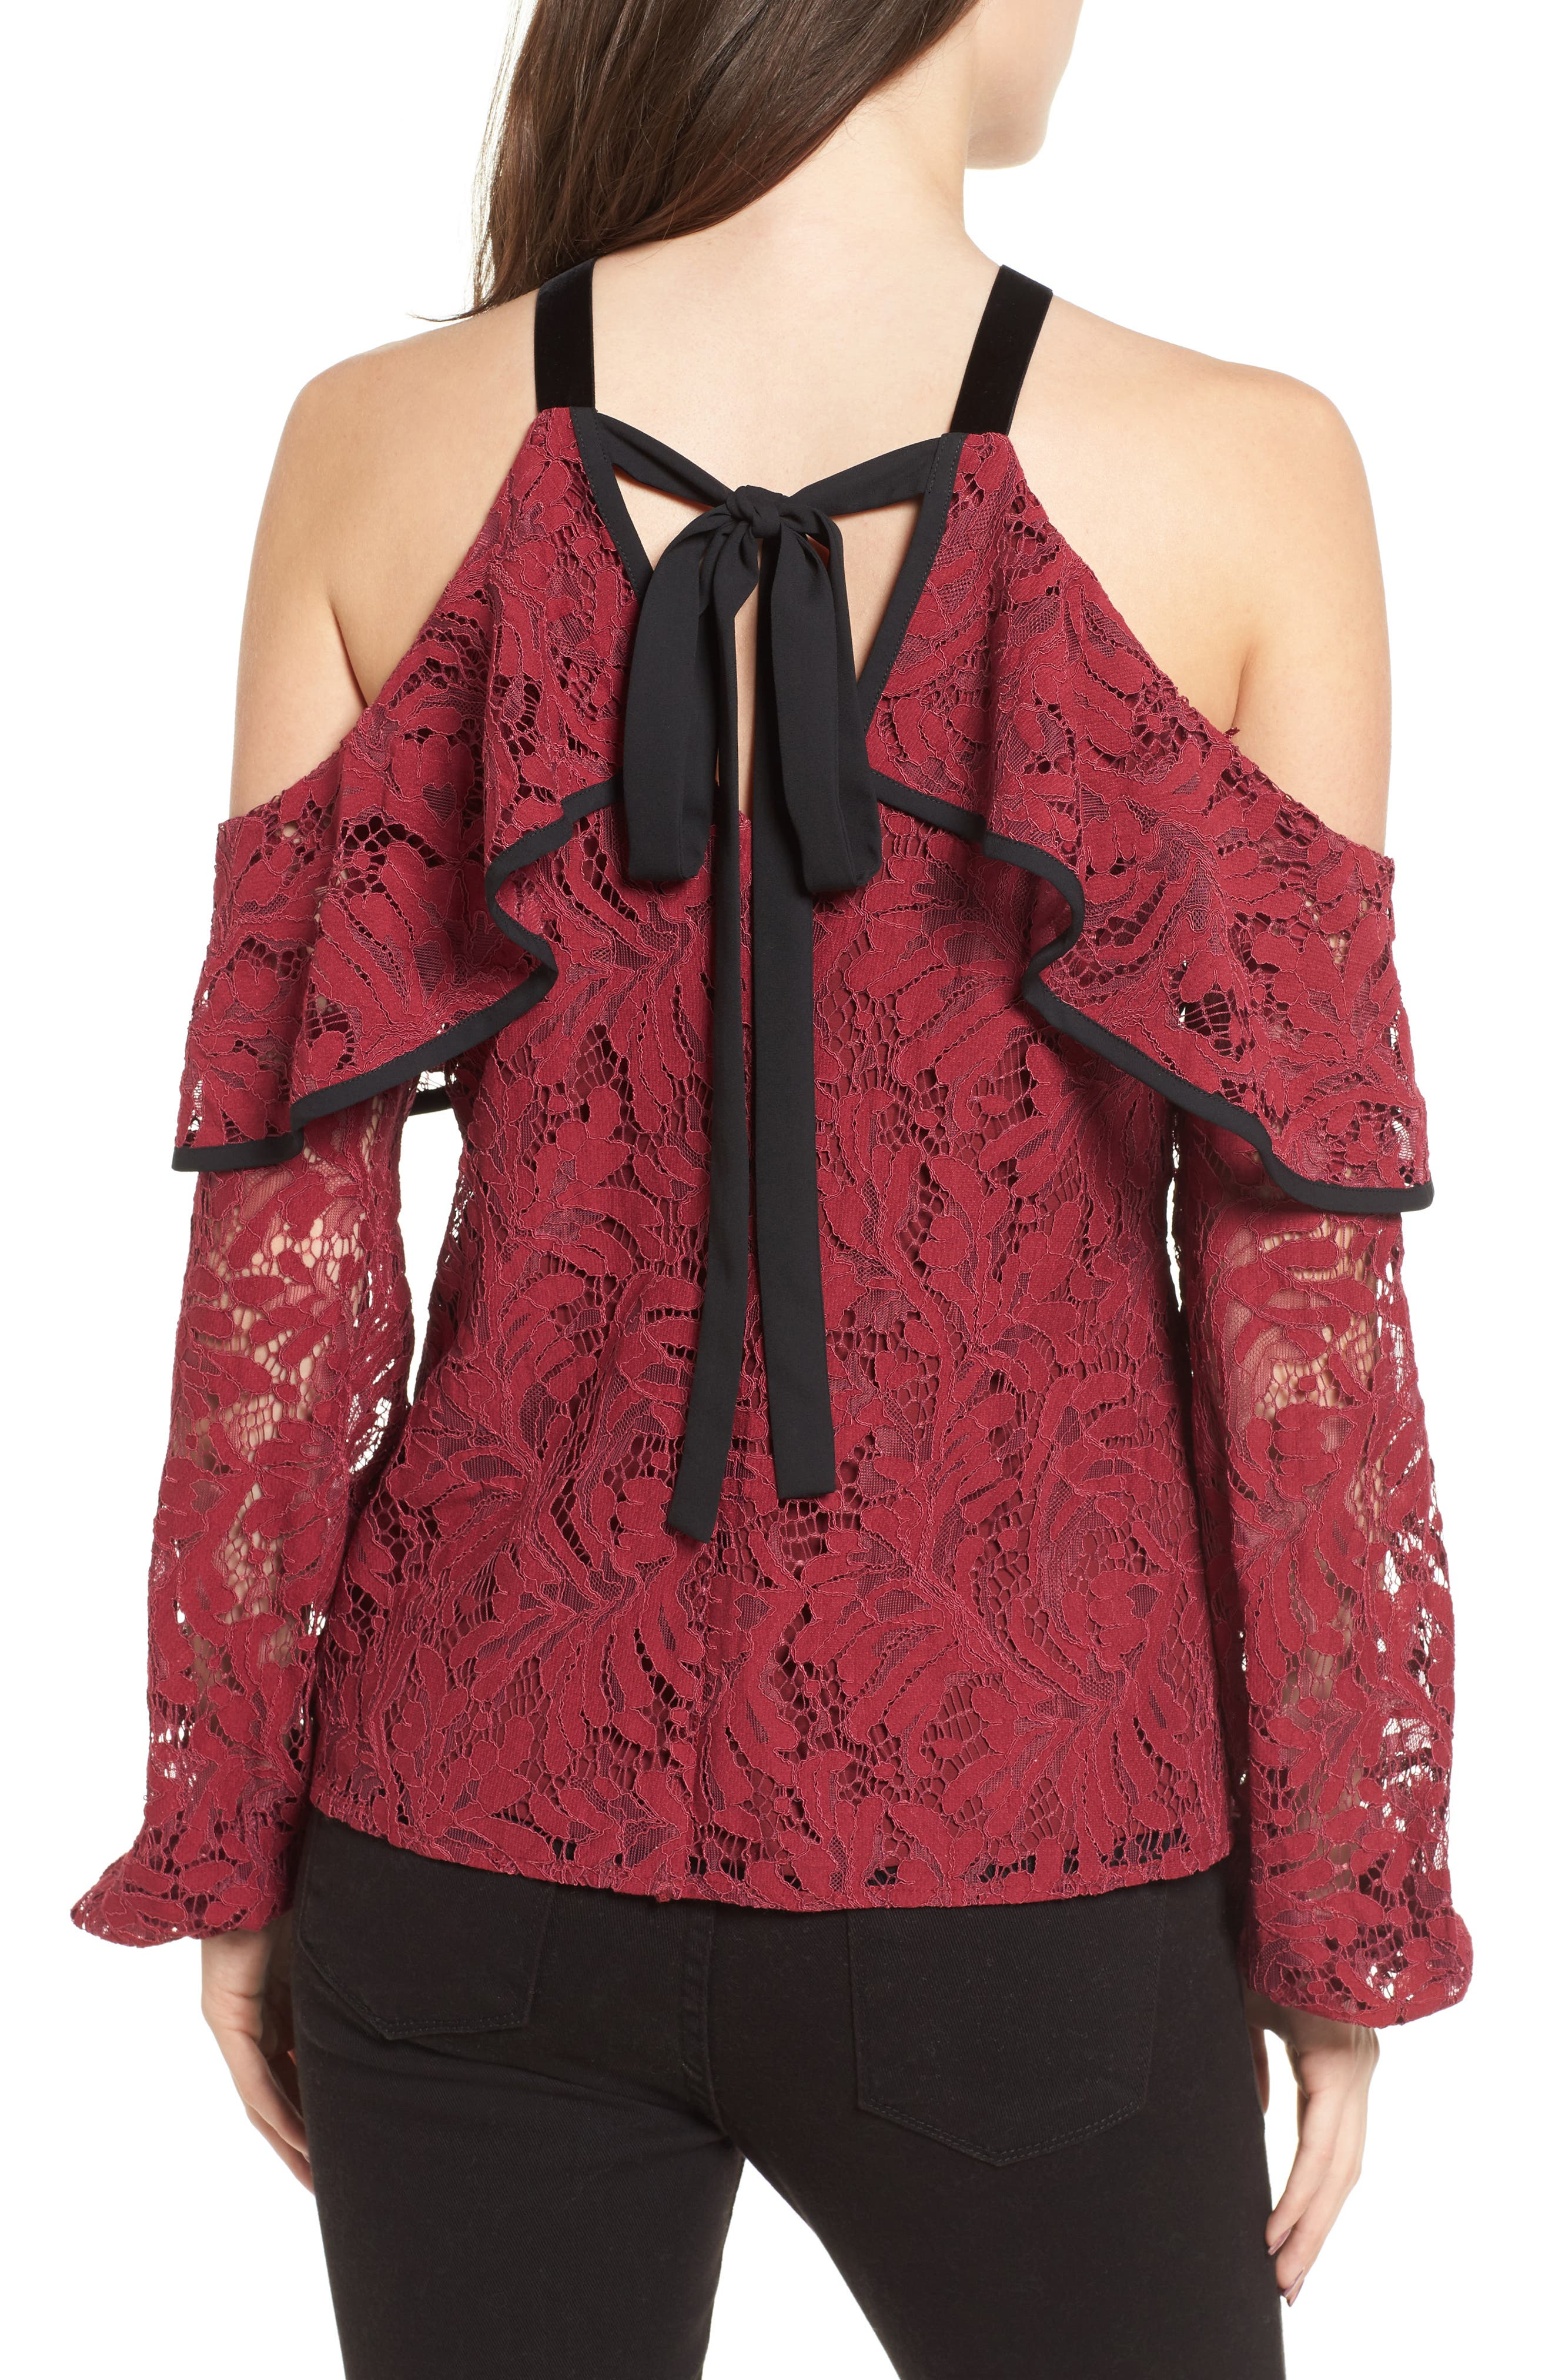 Helena Lace Top,                             Alternate thumbnail 2, color,                             Burgundy